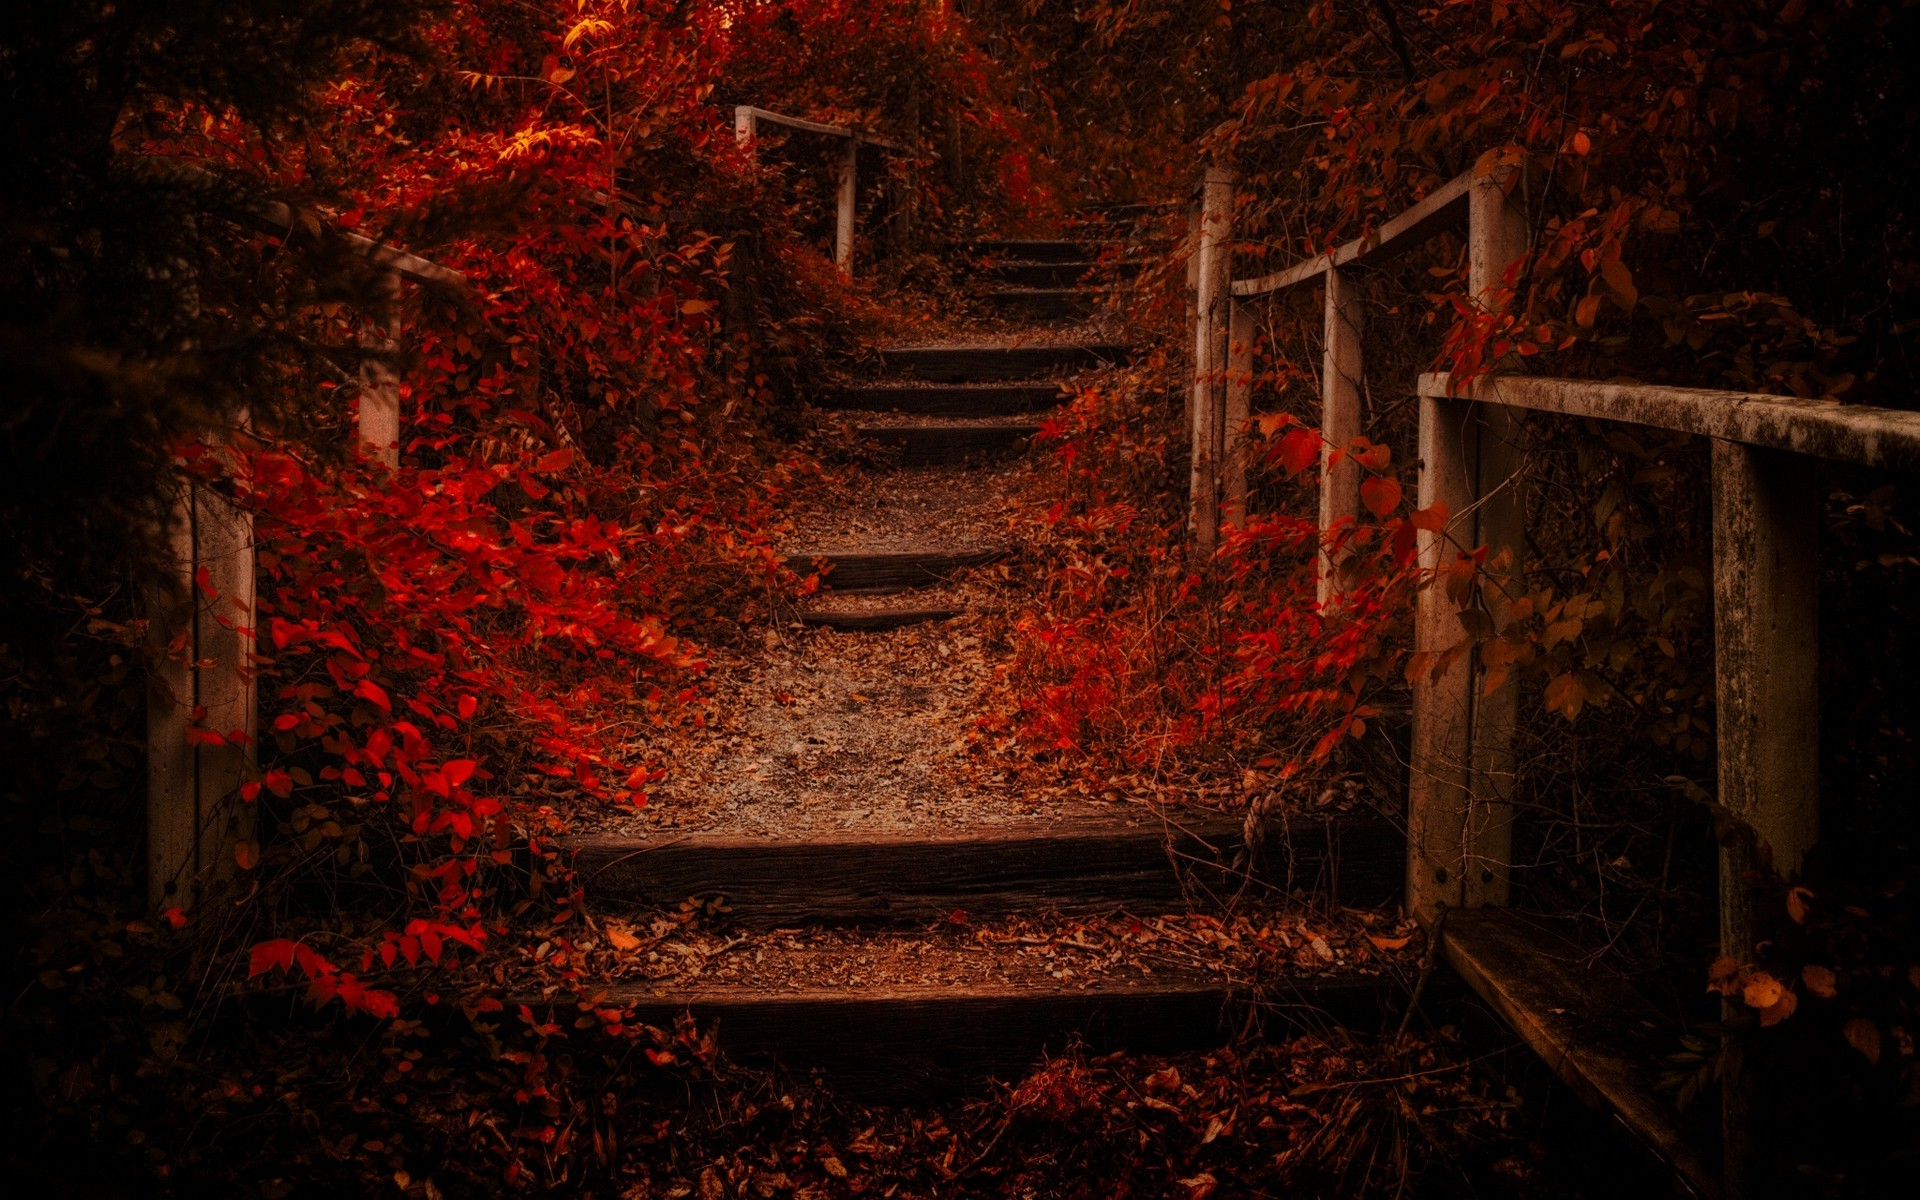 Fall Leaves Pathway Computer Wallpaper Wallpaper Landscape Forest Fall Leaves Night Nature